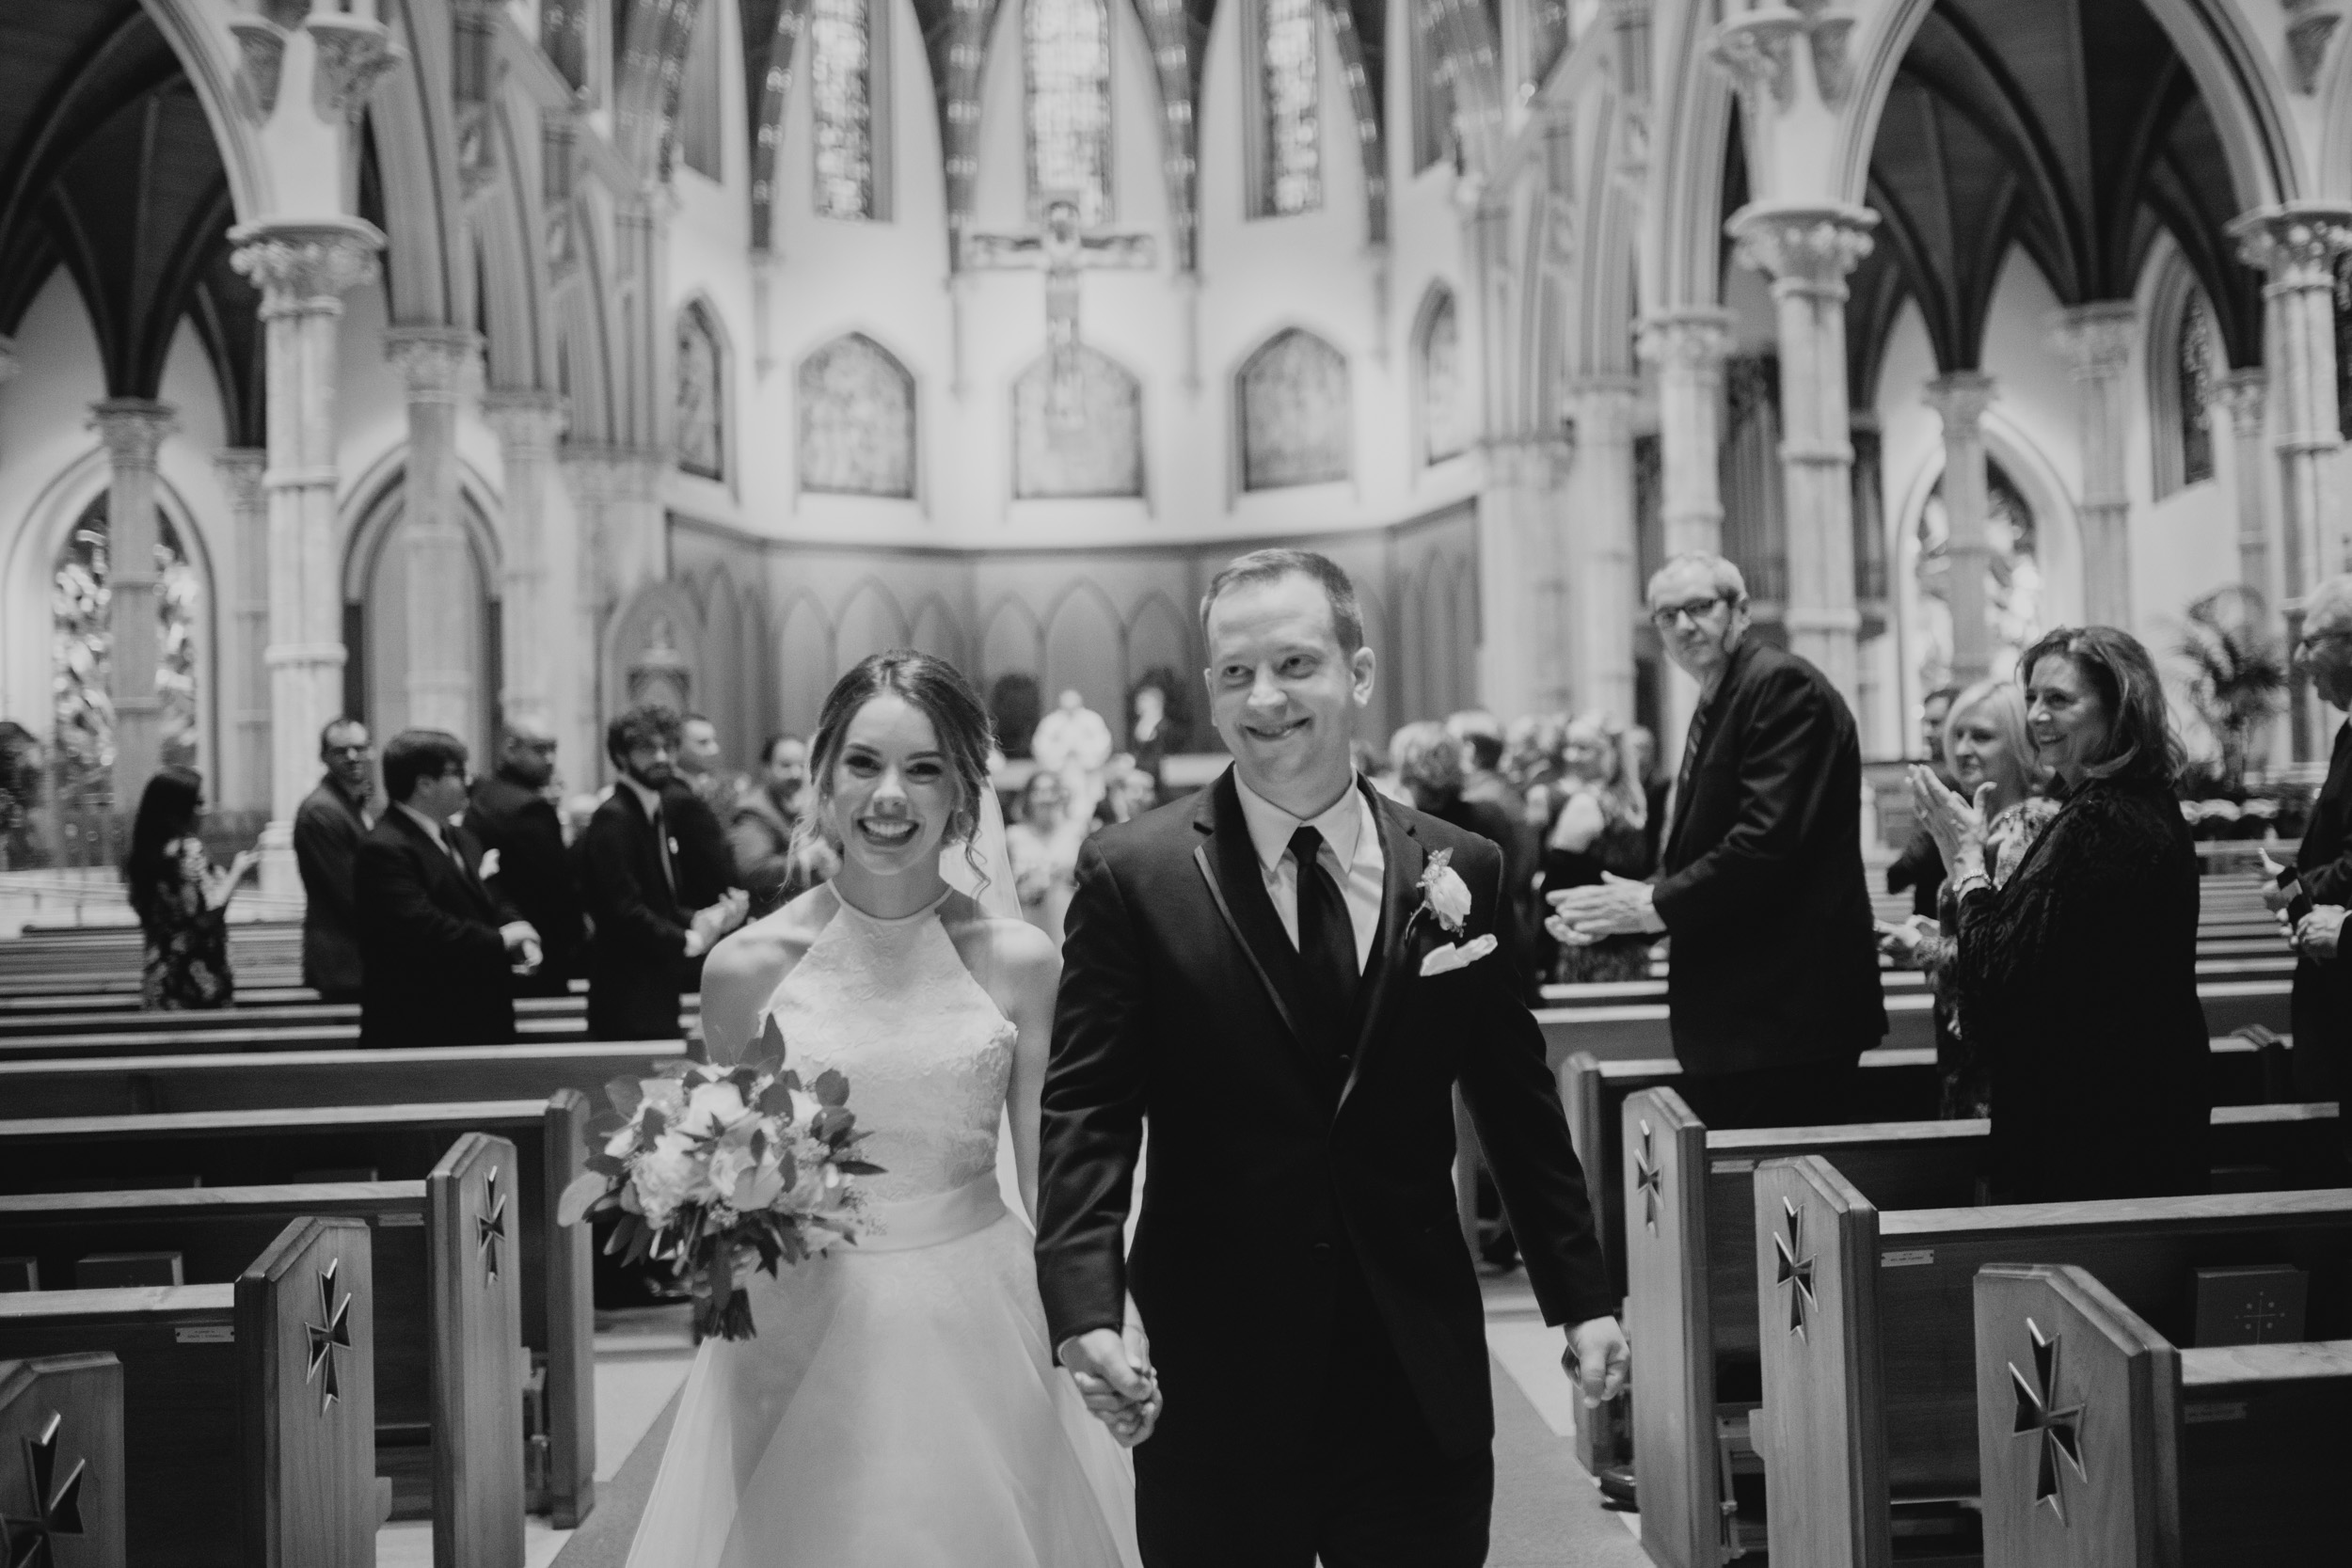 Downtown Chicago Wedding_Polly C Photography 1706162819.jpg